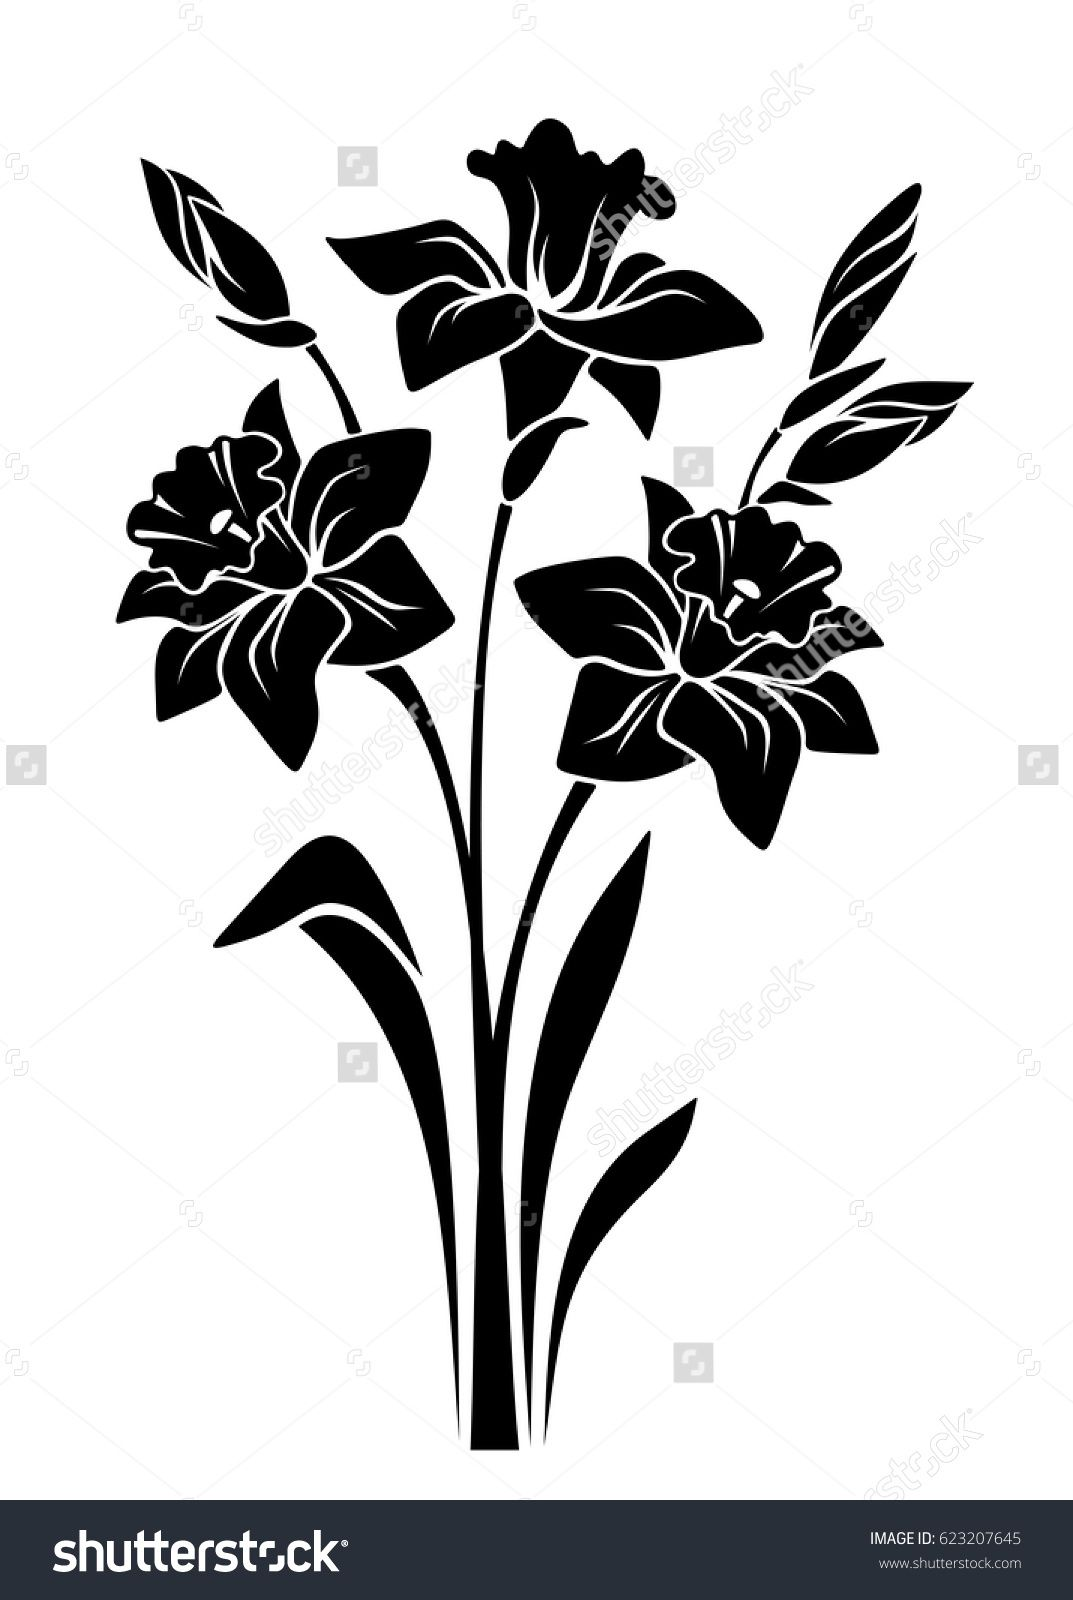 Vector black silhouette of bouquet of narcissus flowers